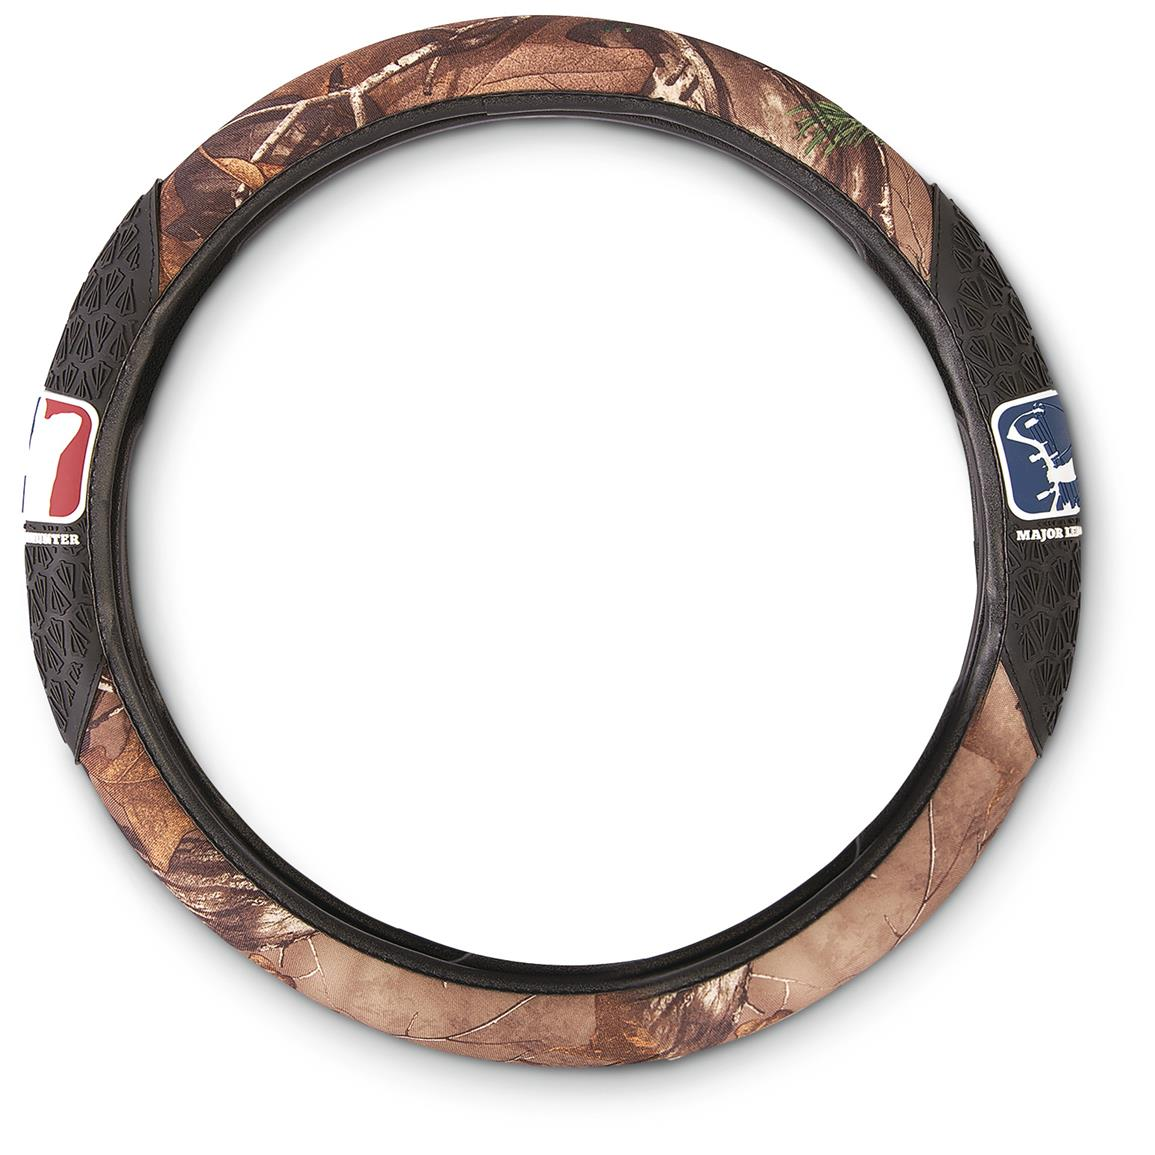 2-grip Universal Camo Steering Wheel Cover, Major League Bowhunter